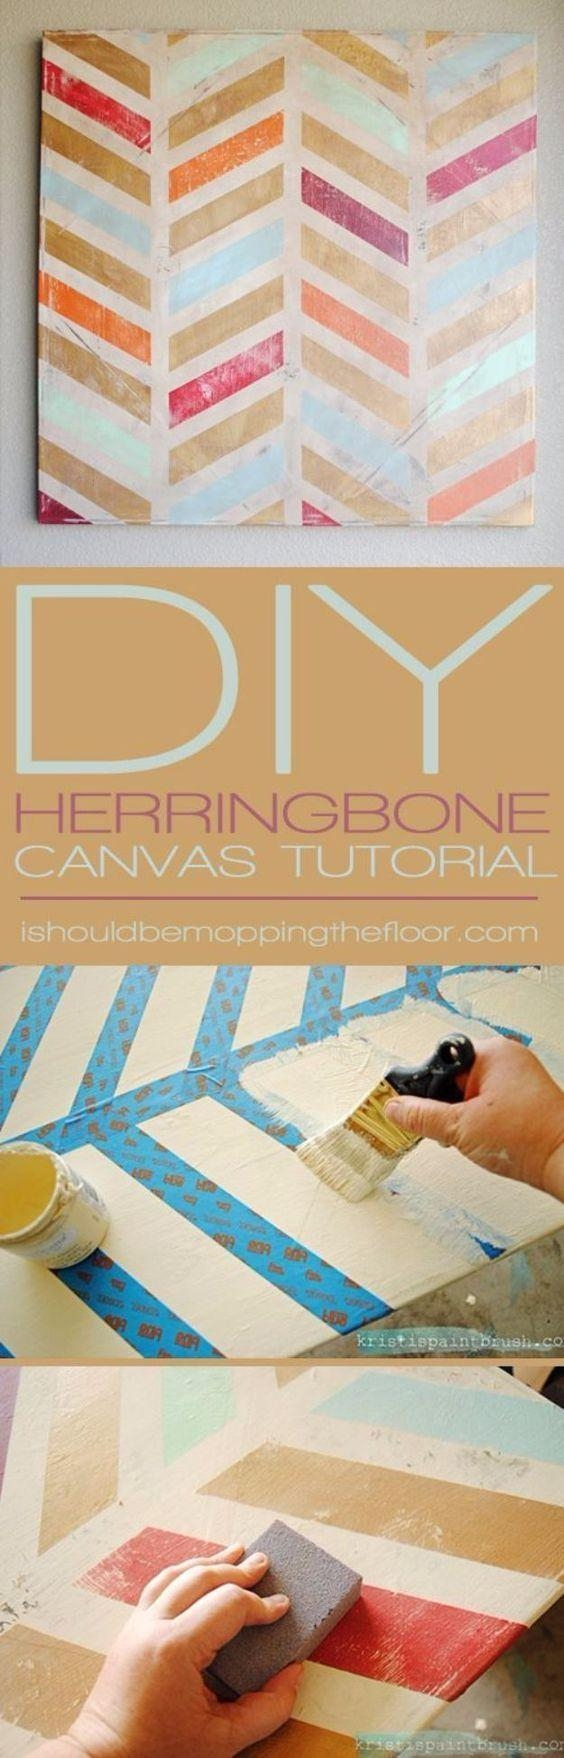 Best 20+ Canvas Wall Art Ideas On Pinterest—No Signup Required Intended For Diy Pinterest Canvas Art (Image 4 of 20)